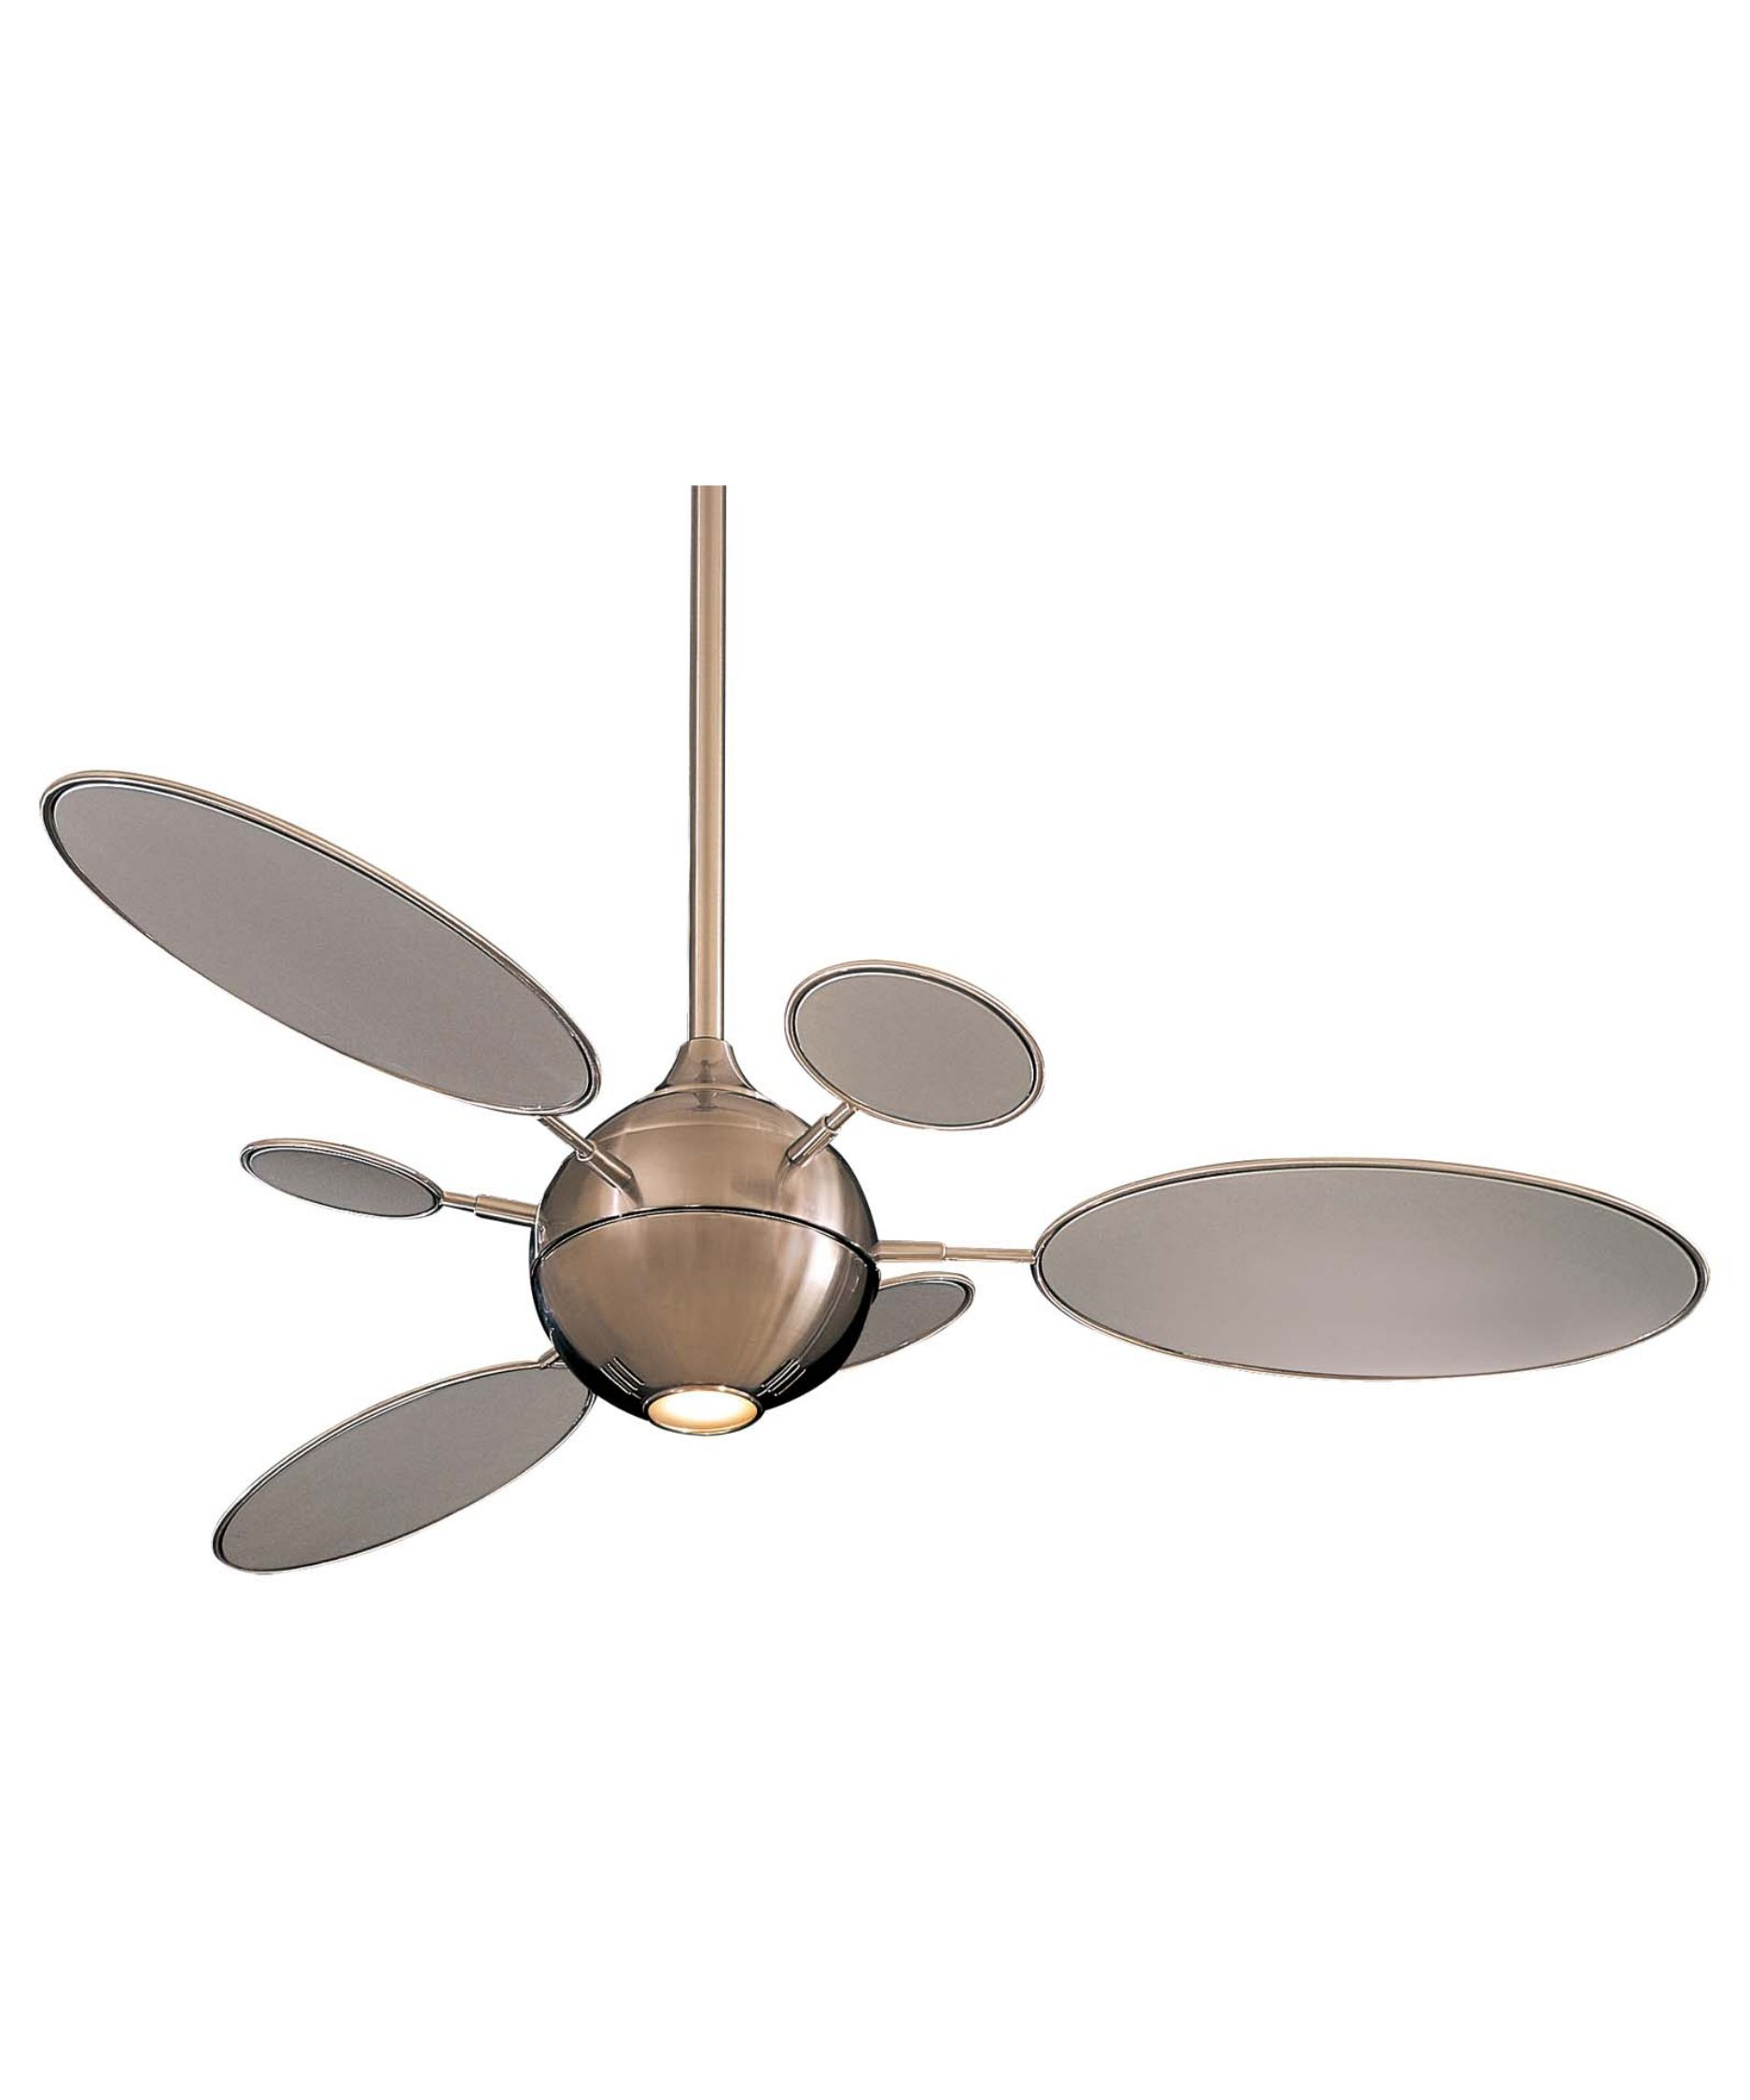 Cirque 54 Inch Ceiling Fan With Light Kit By Minka Aire Ceiling